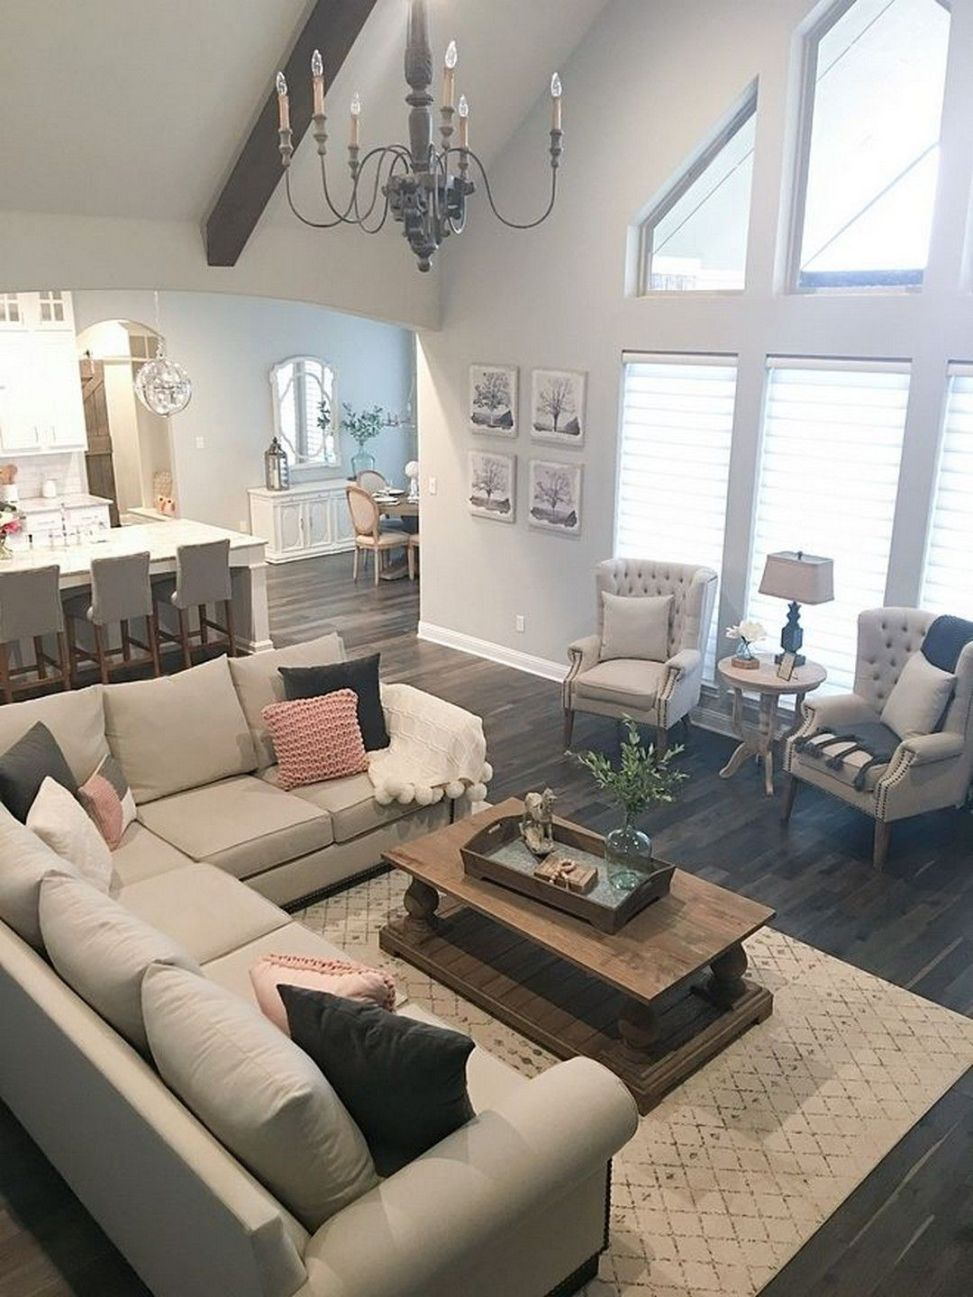 Cozy Modern Farmhouse Living Room Decorating Ideas 31 Vaulted Ceiling Living Room Farm House Living Room French Country Living Room Decorating vaulted living rooms